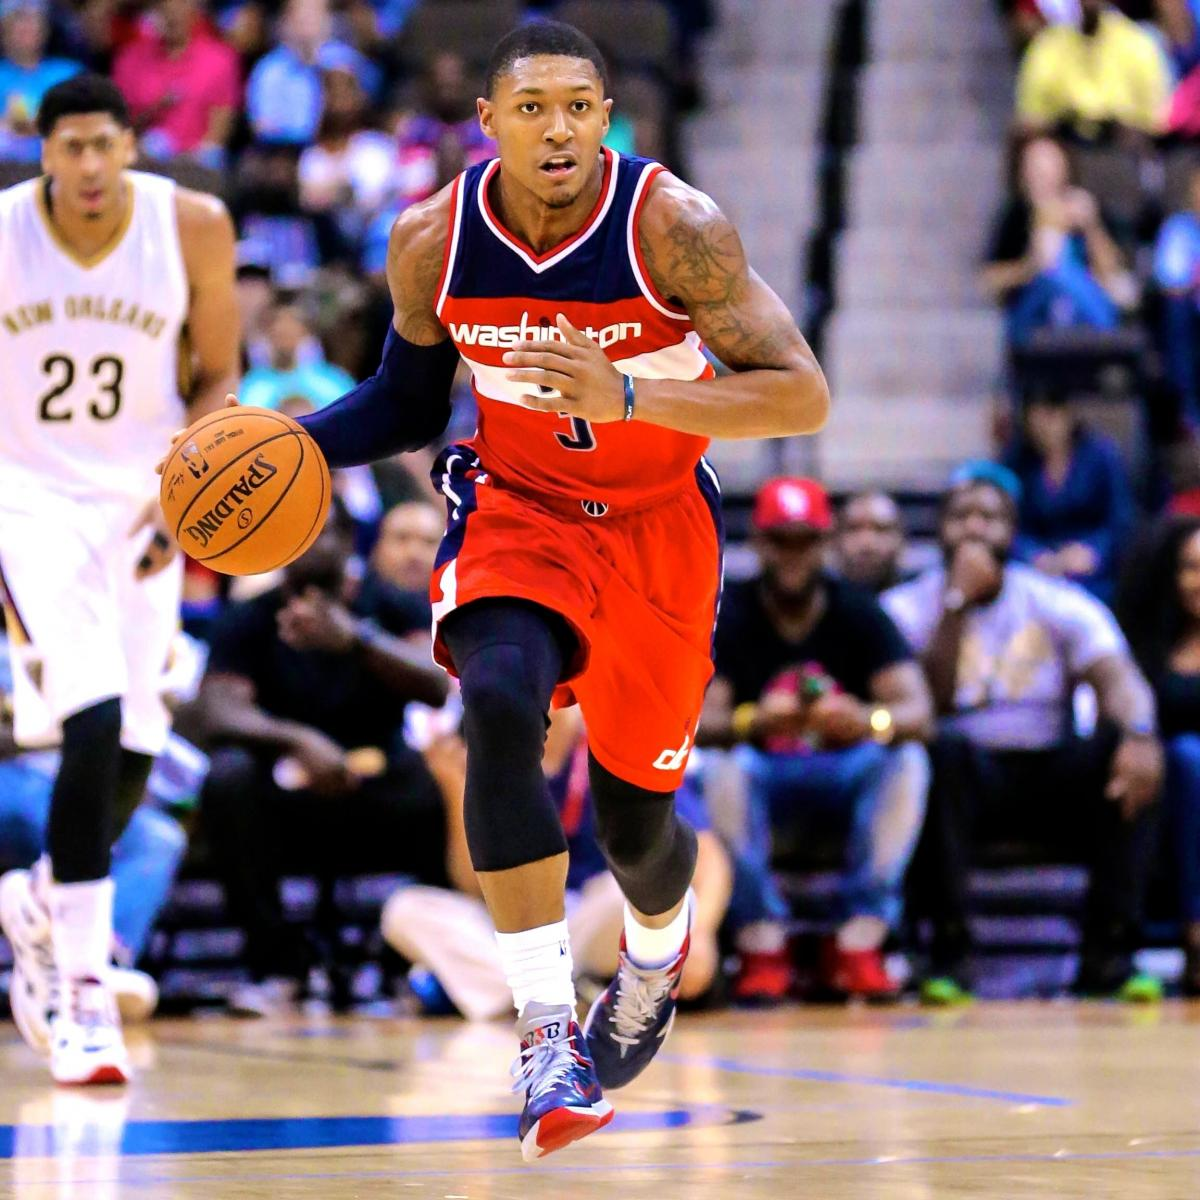 Colorado Shooting Castillo: Bradley Beal Injury: Updates On Wizards Guard's Wrist And